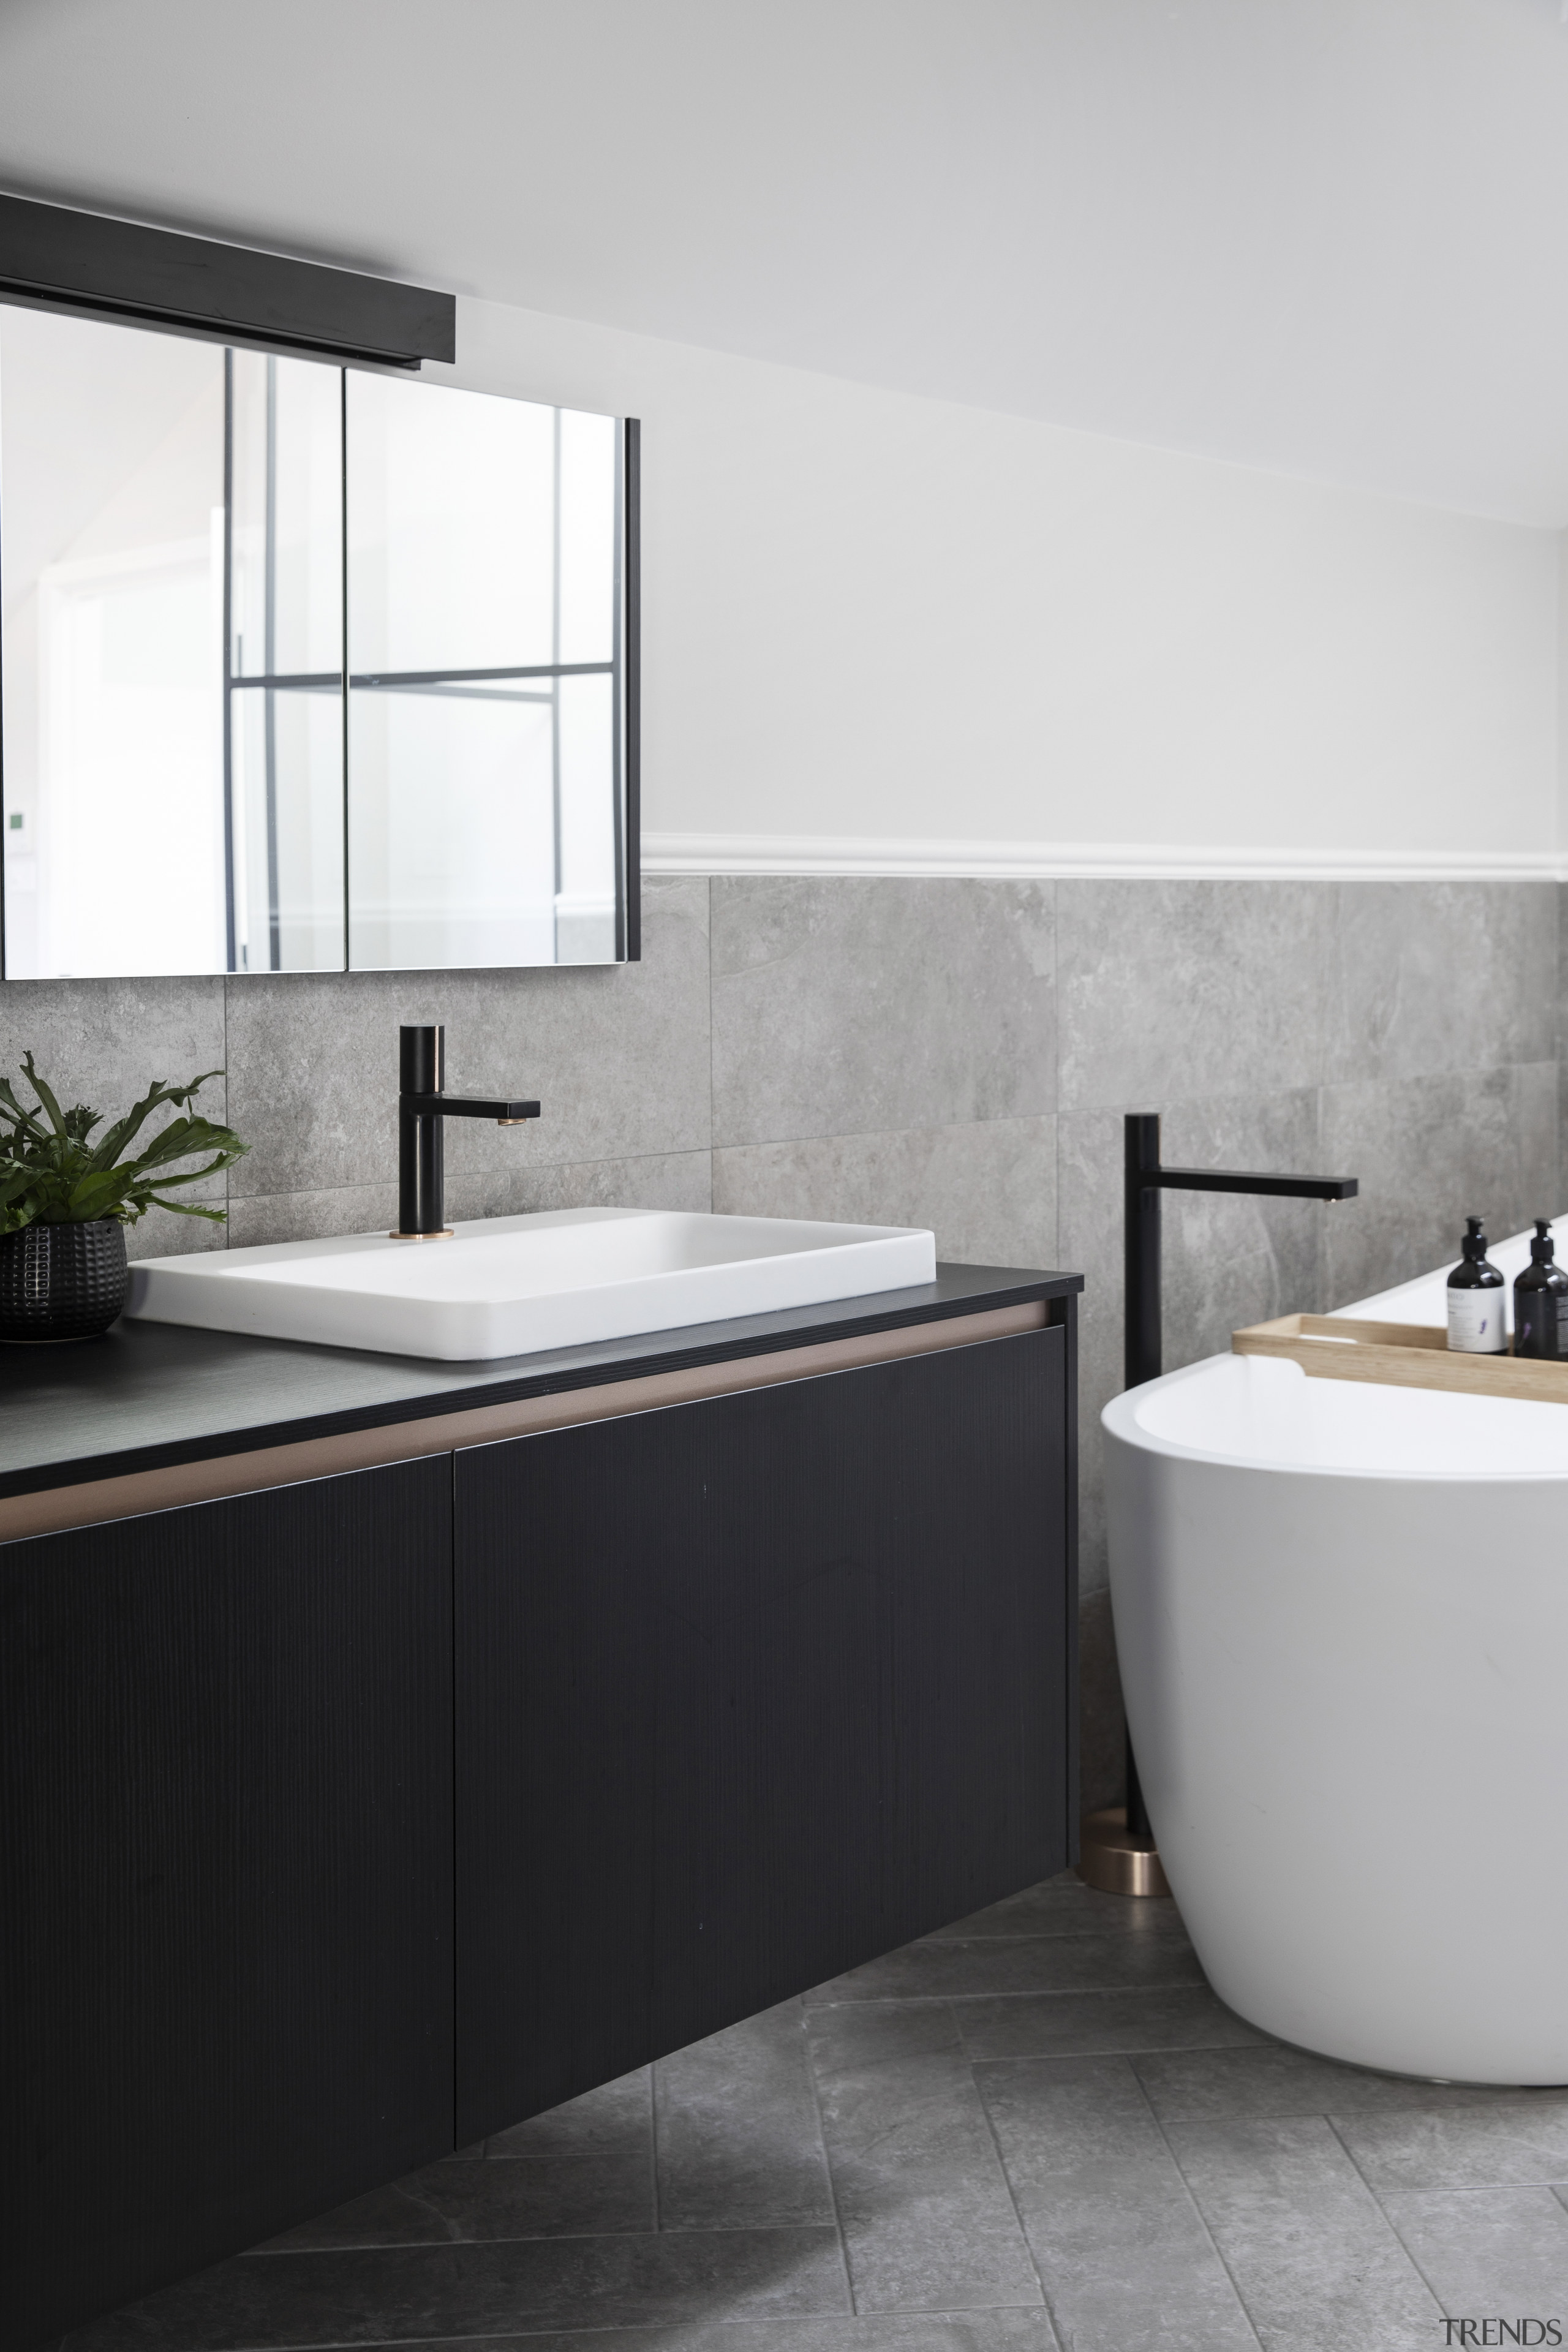 The natural palette of tiles in large format